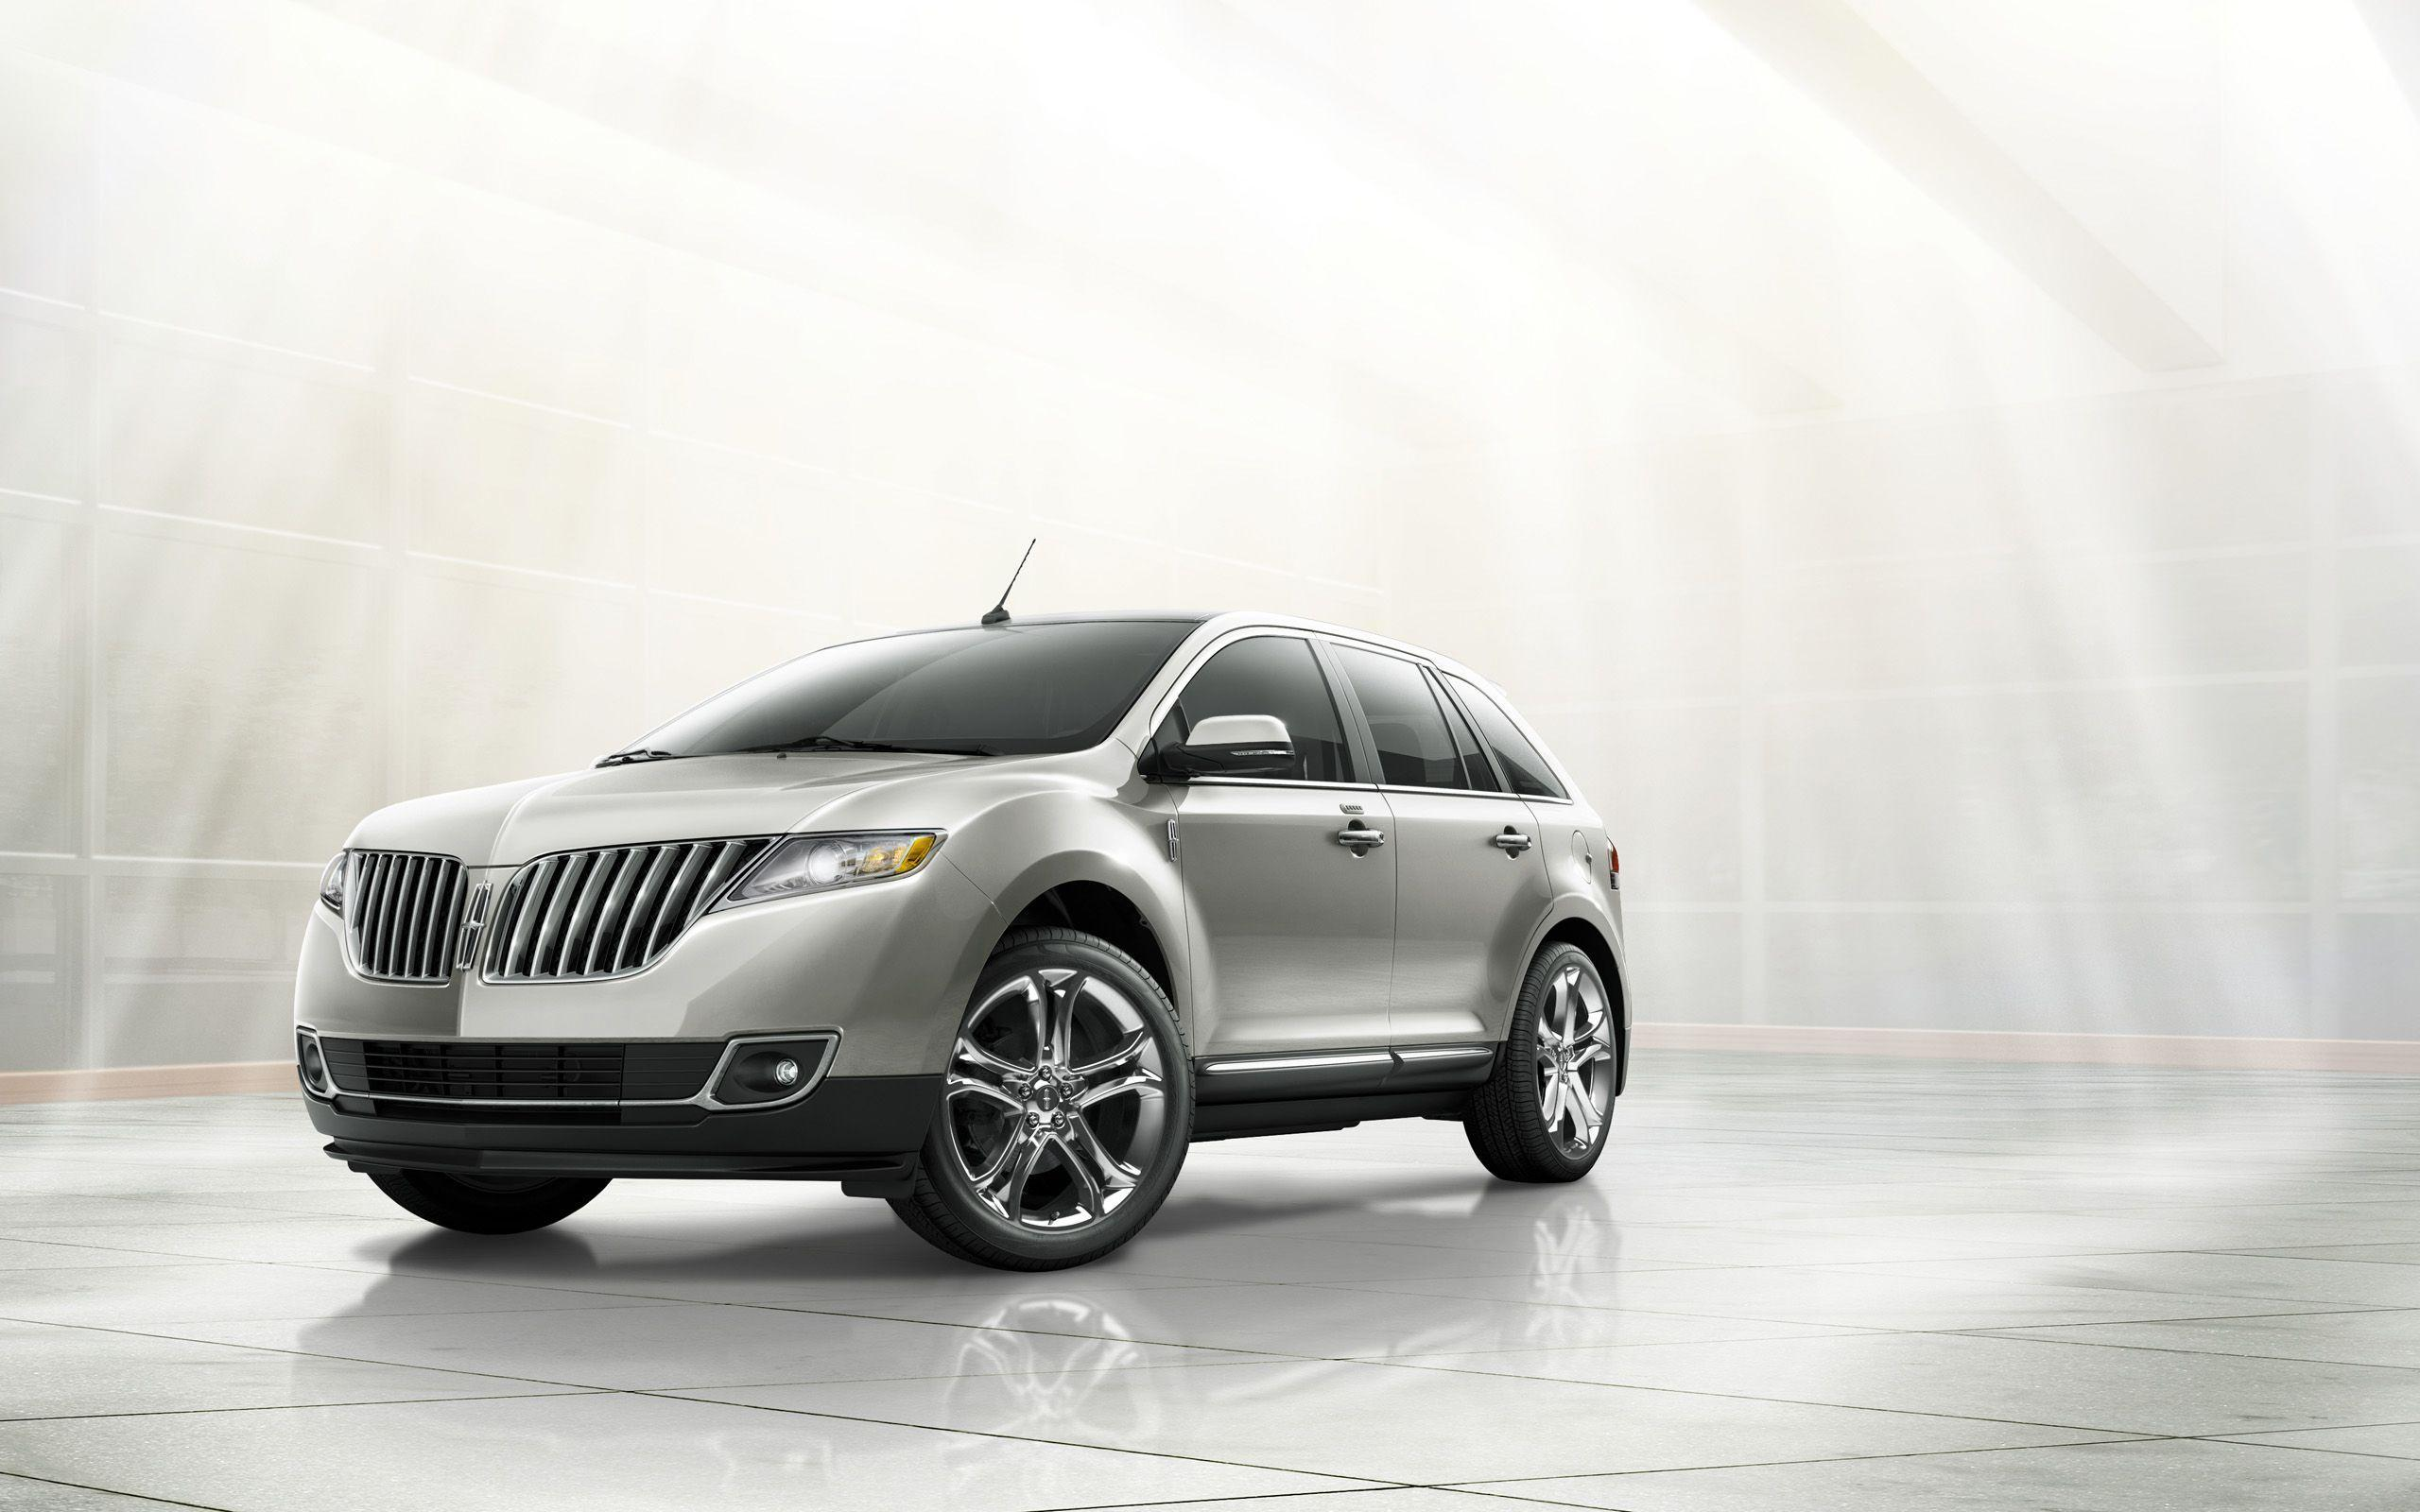 Lincoln Mkx Wallpapers Wallpaper Cave